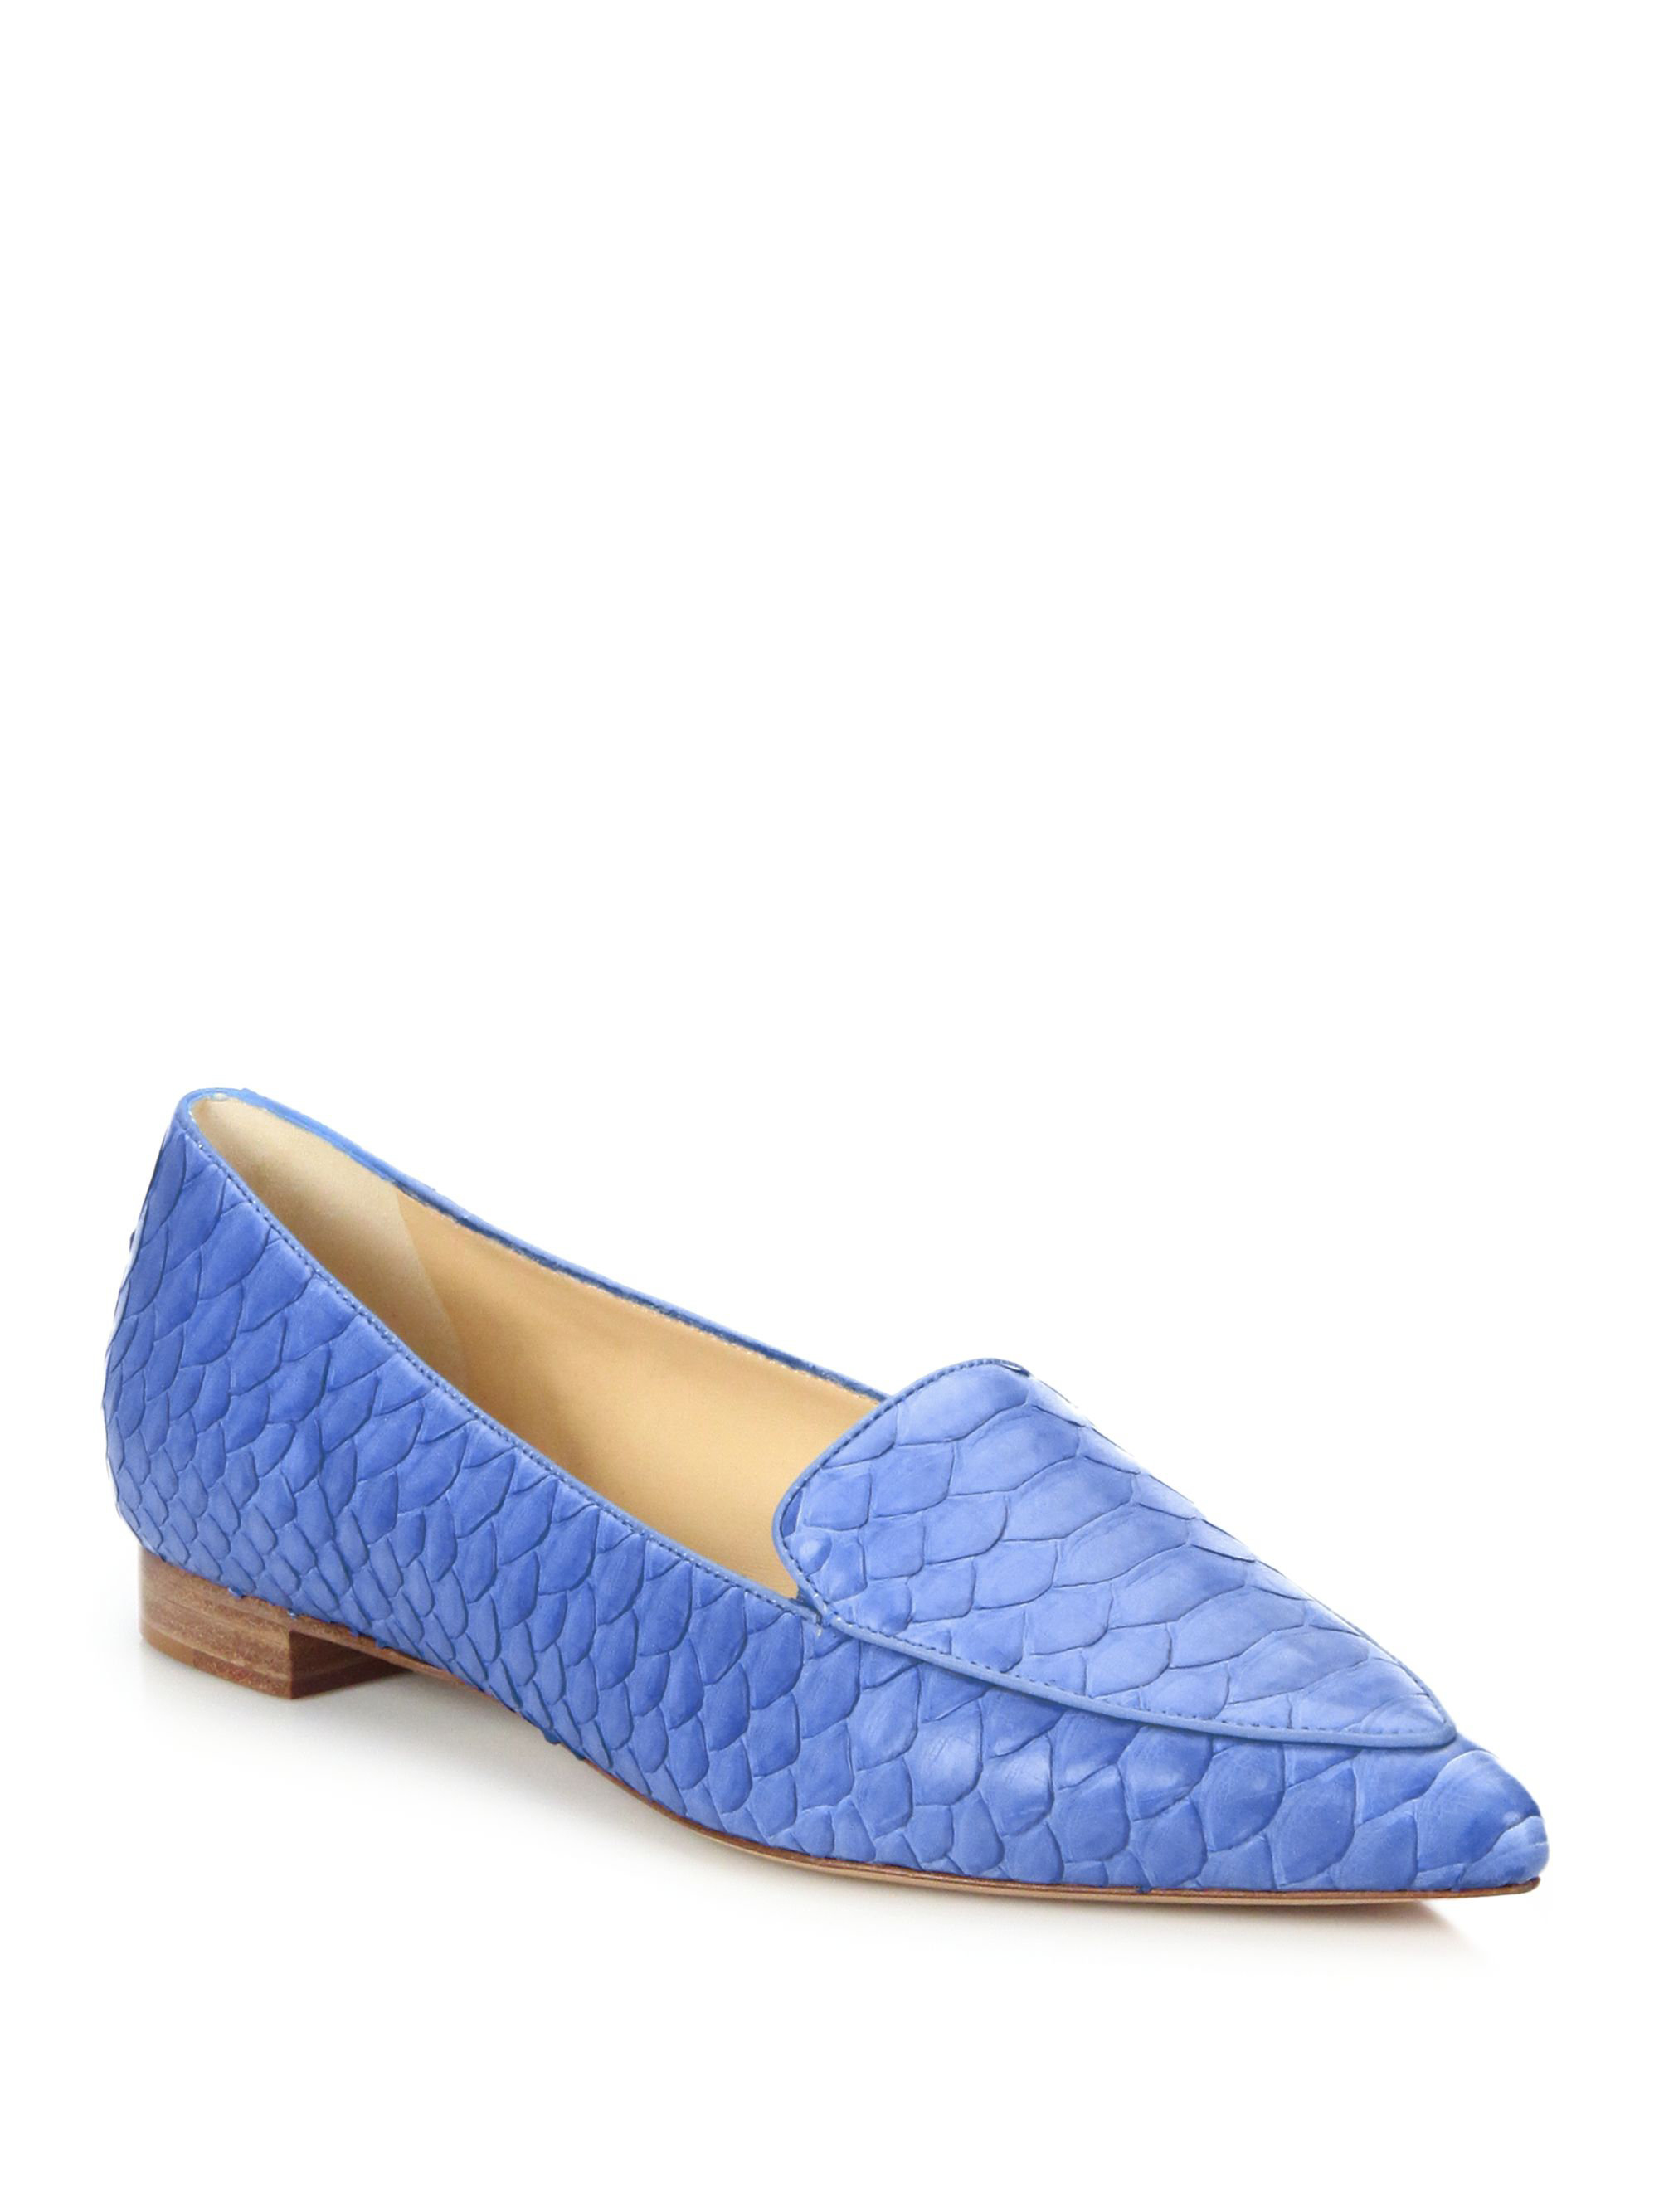 ALEXANDRE BIRMAN Python Flats Extremely Cheap New Arrival Outlet Wide Range Of ntFdB